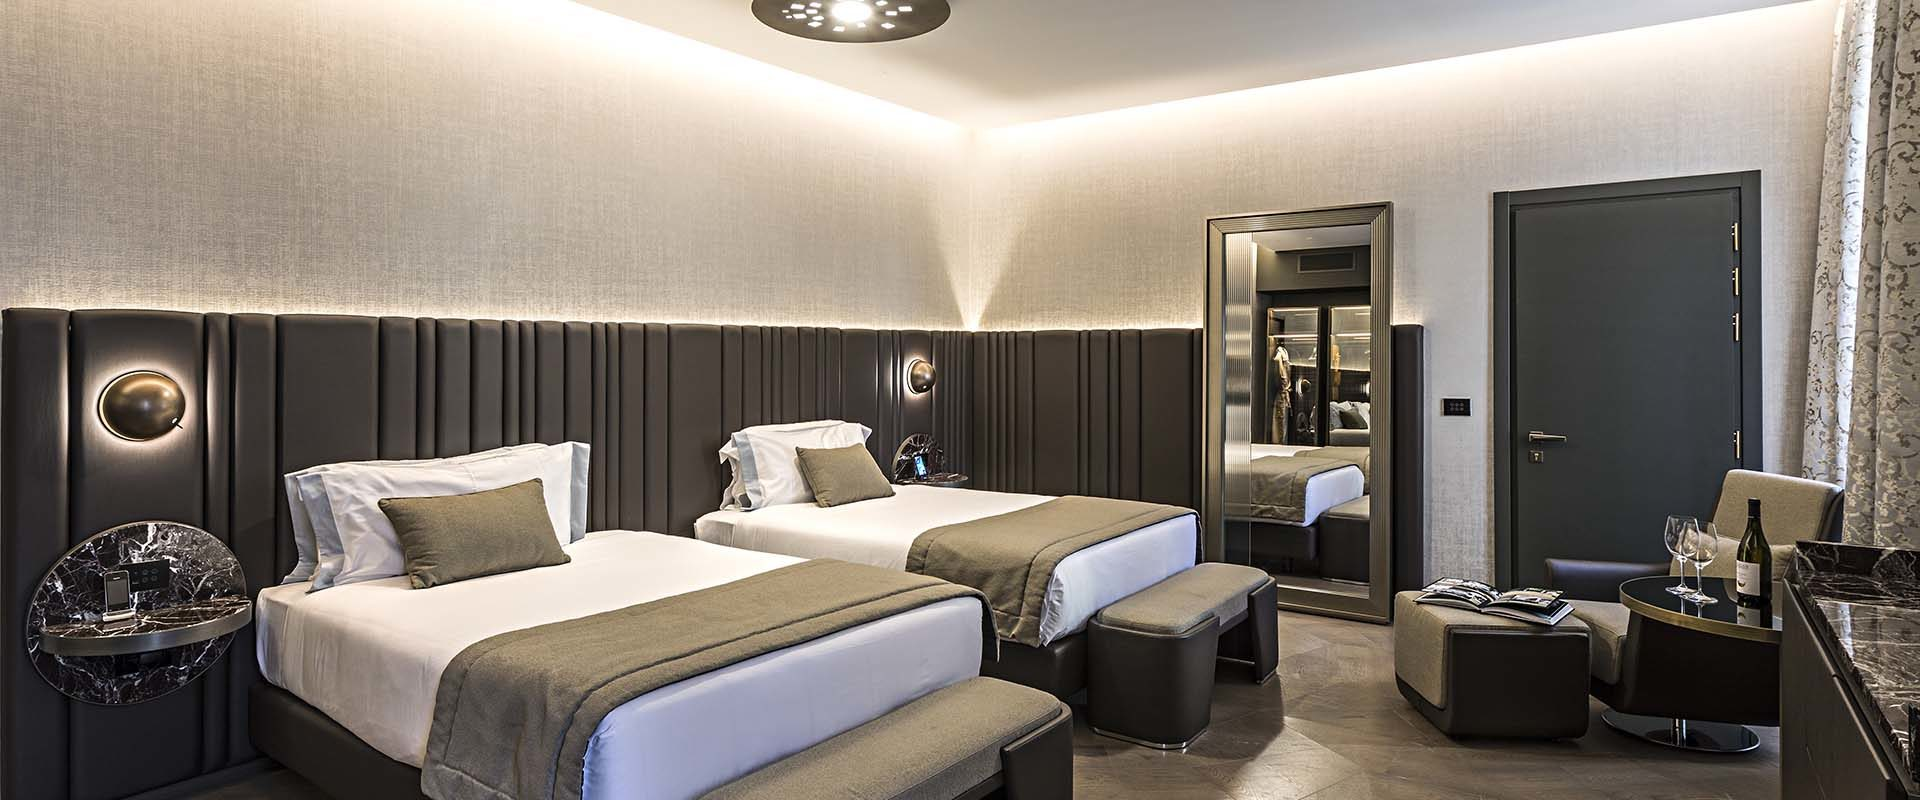 Bedroom of the Junior 2 Double Suite at the Pantheon Icon Hotel